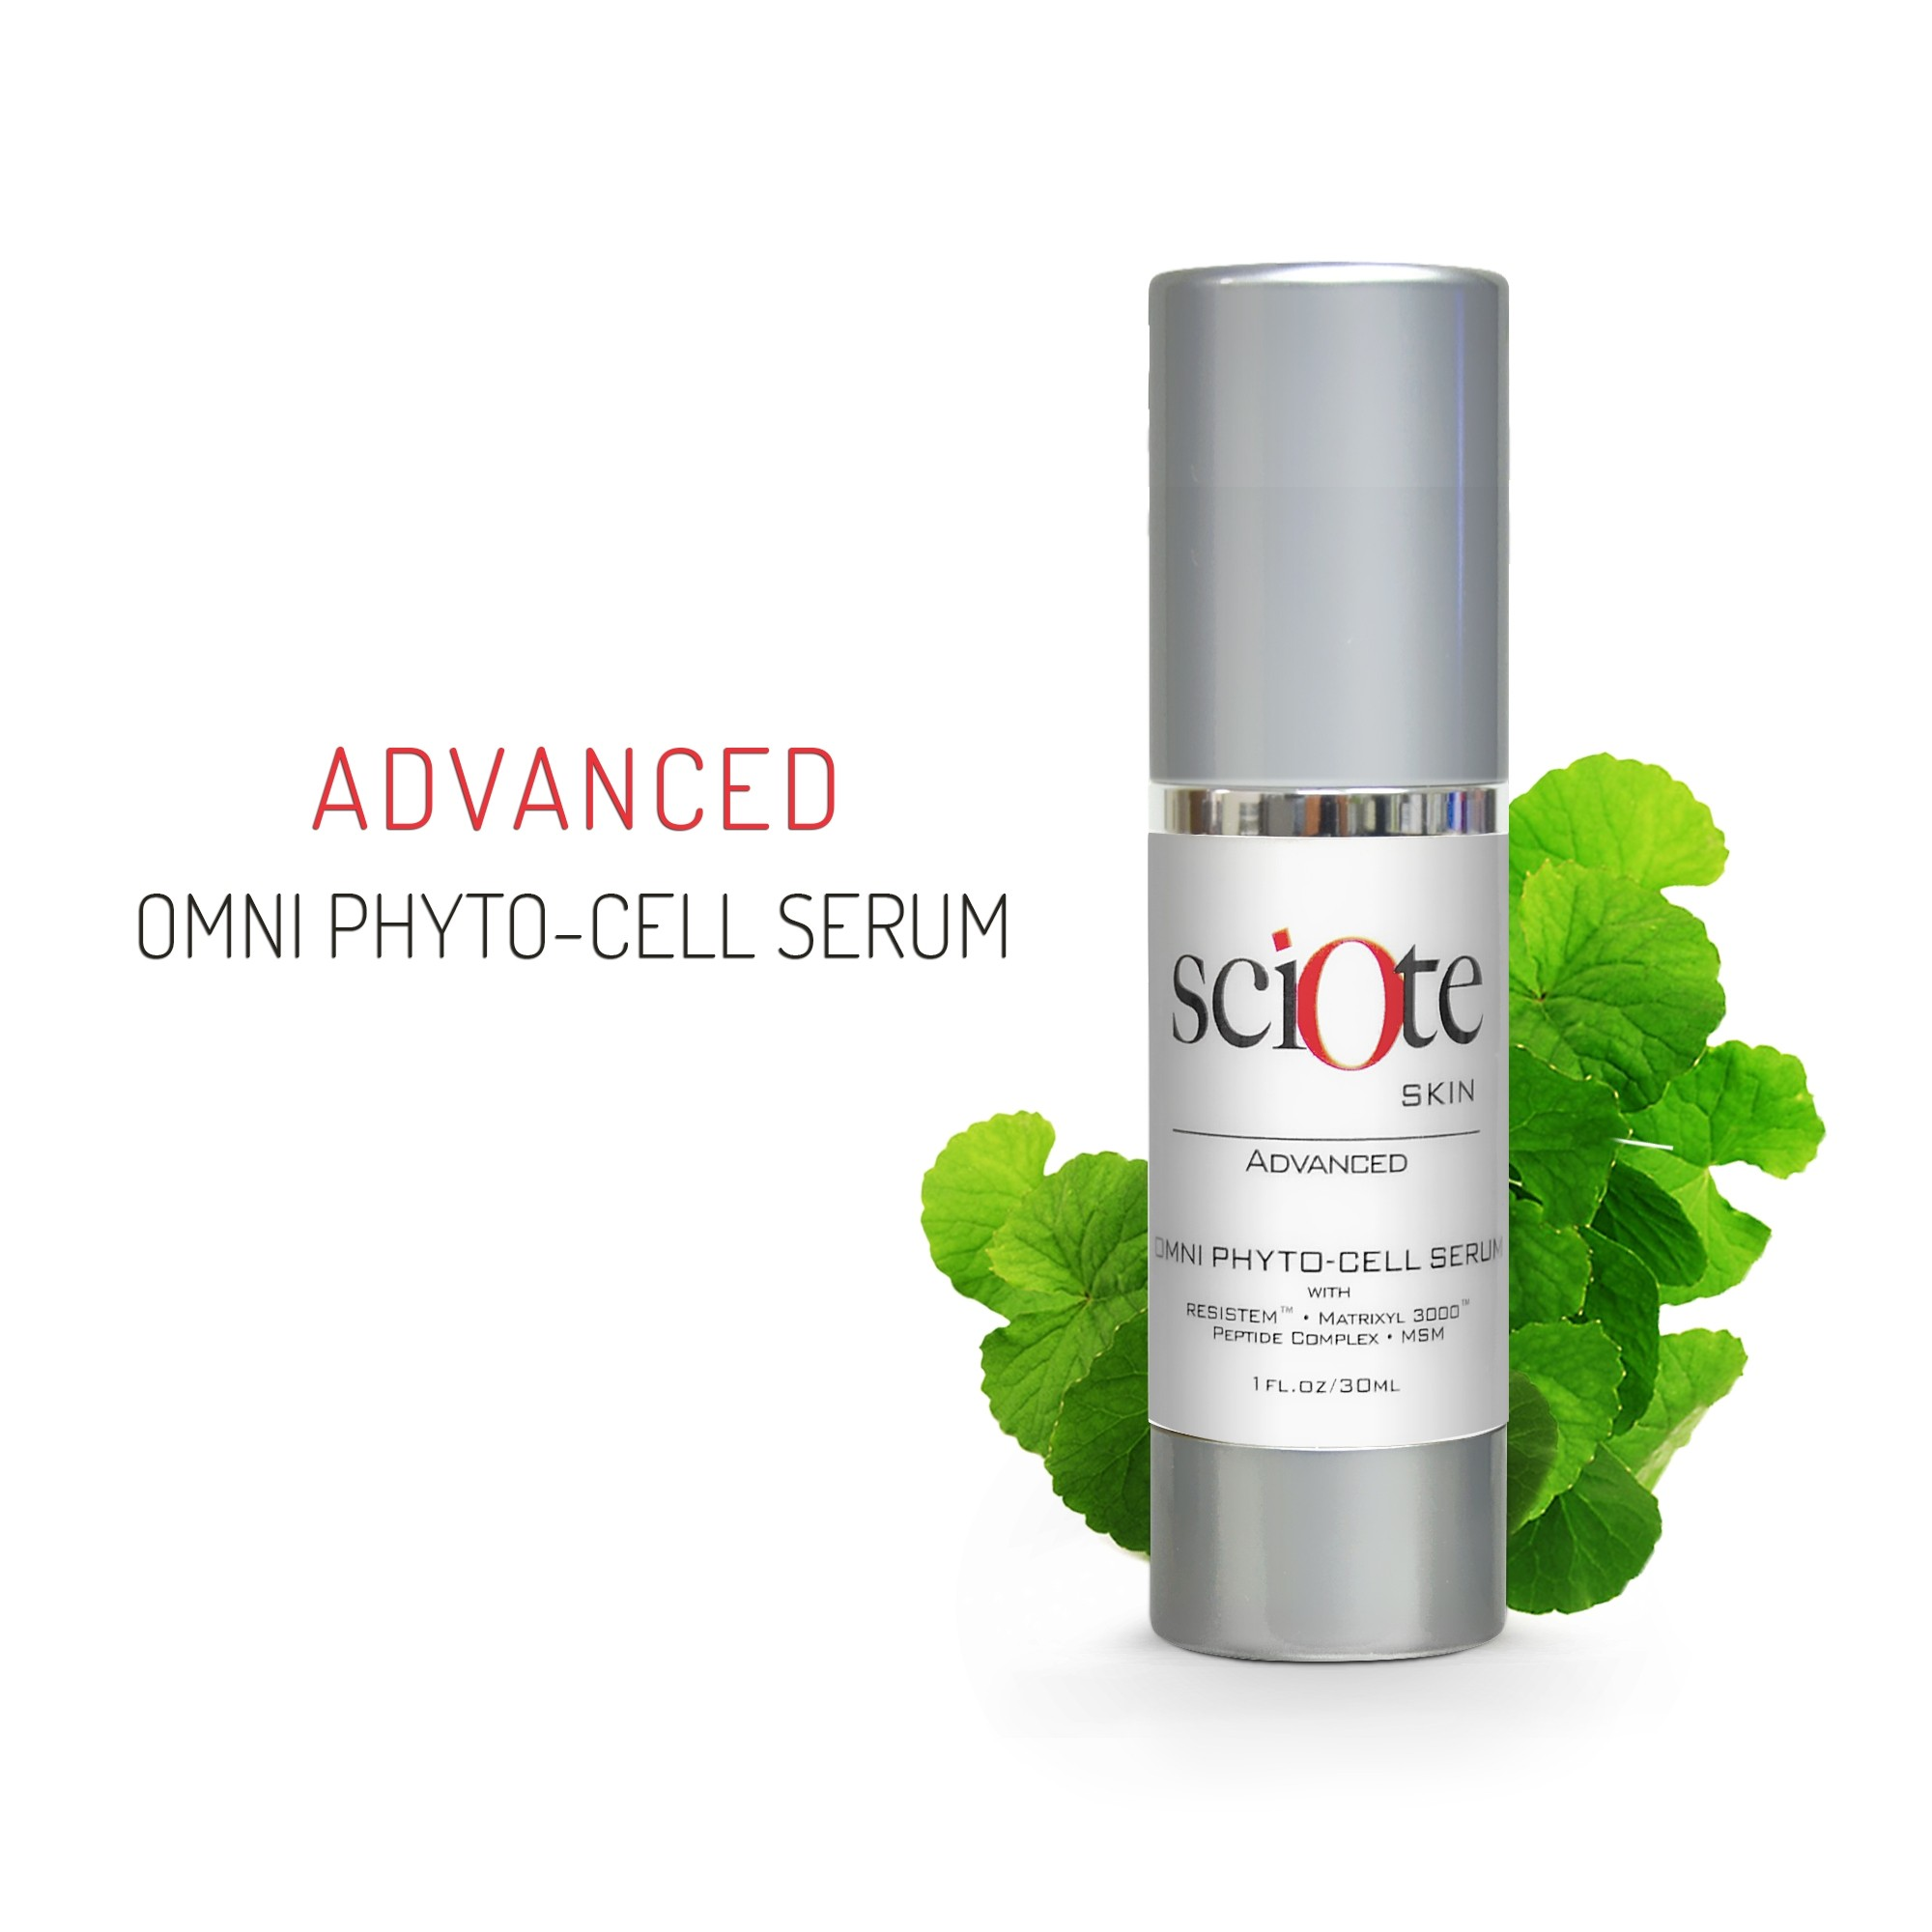 Sciote Omni Phyto Cell Serum Matrixyl 3000 Truth In Aging